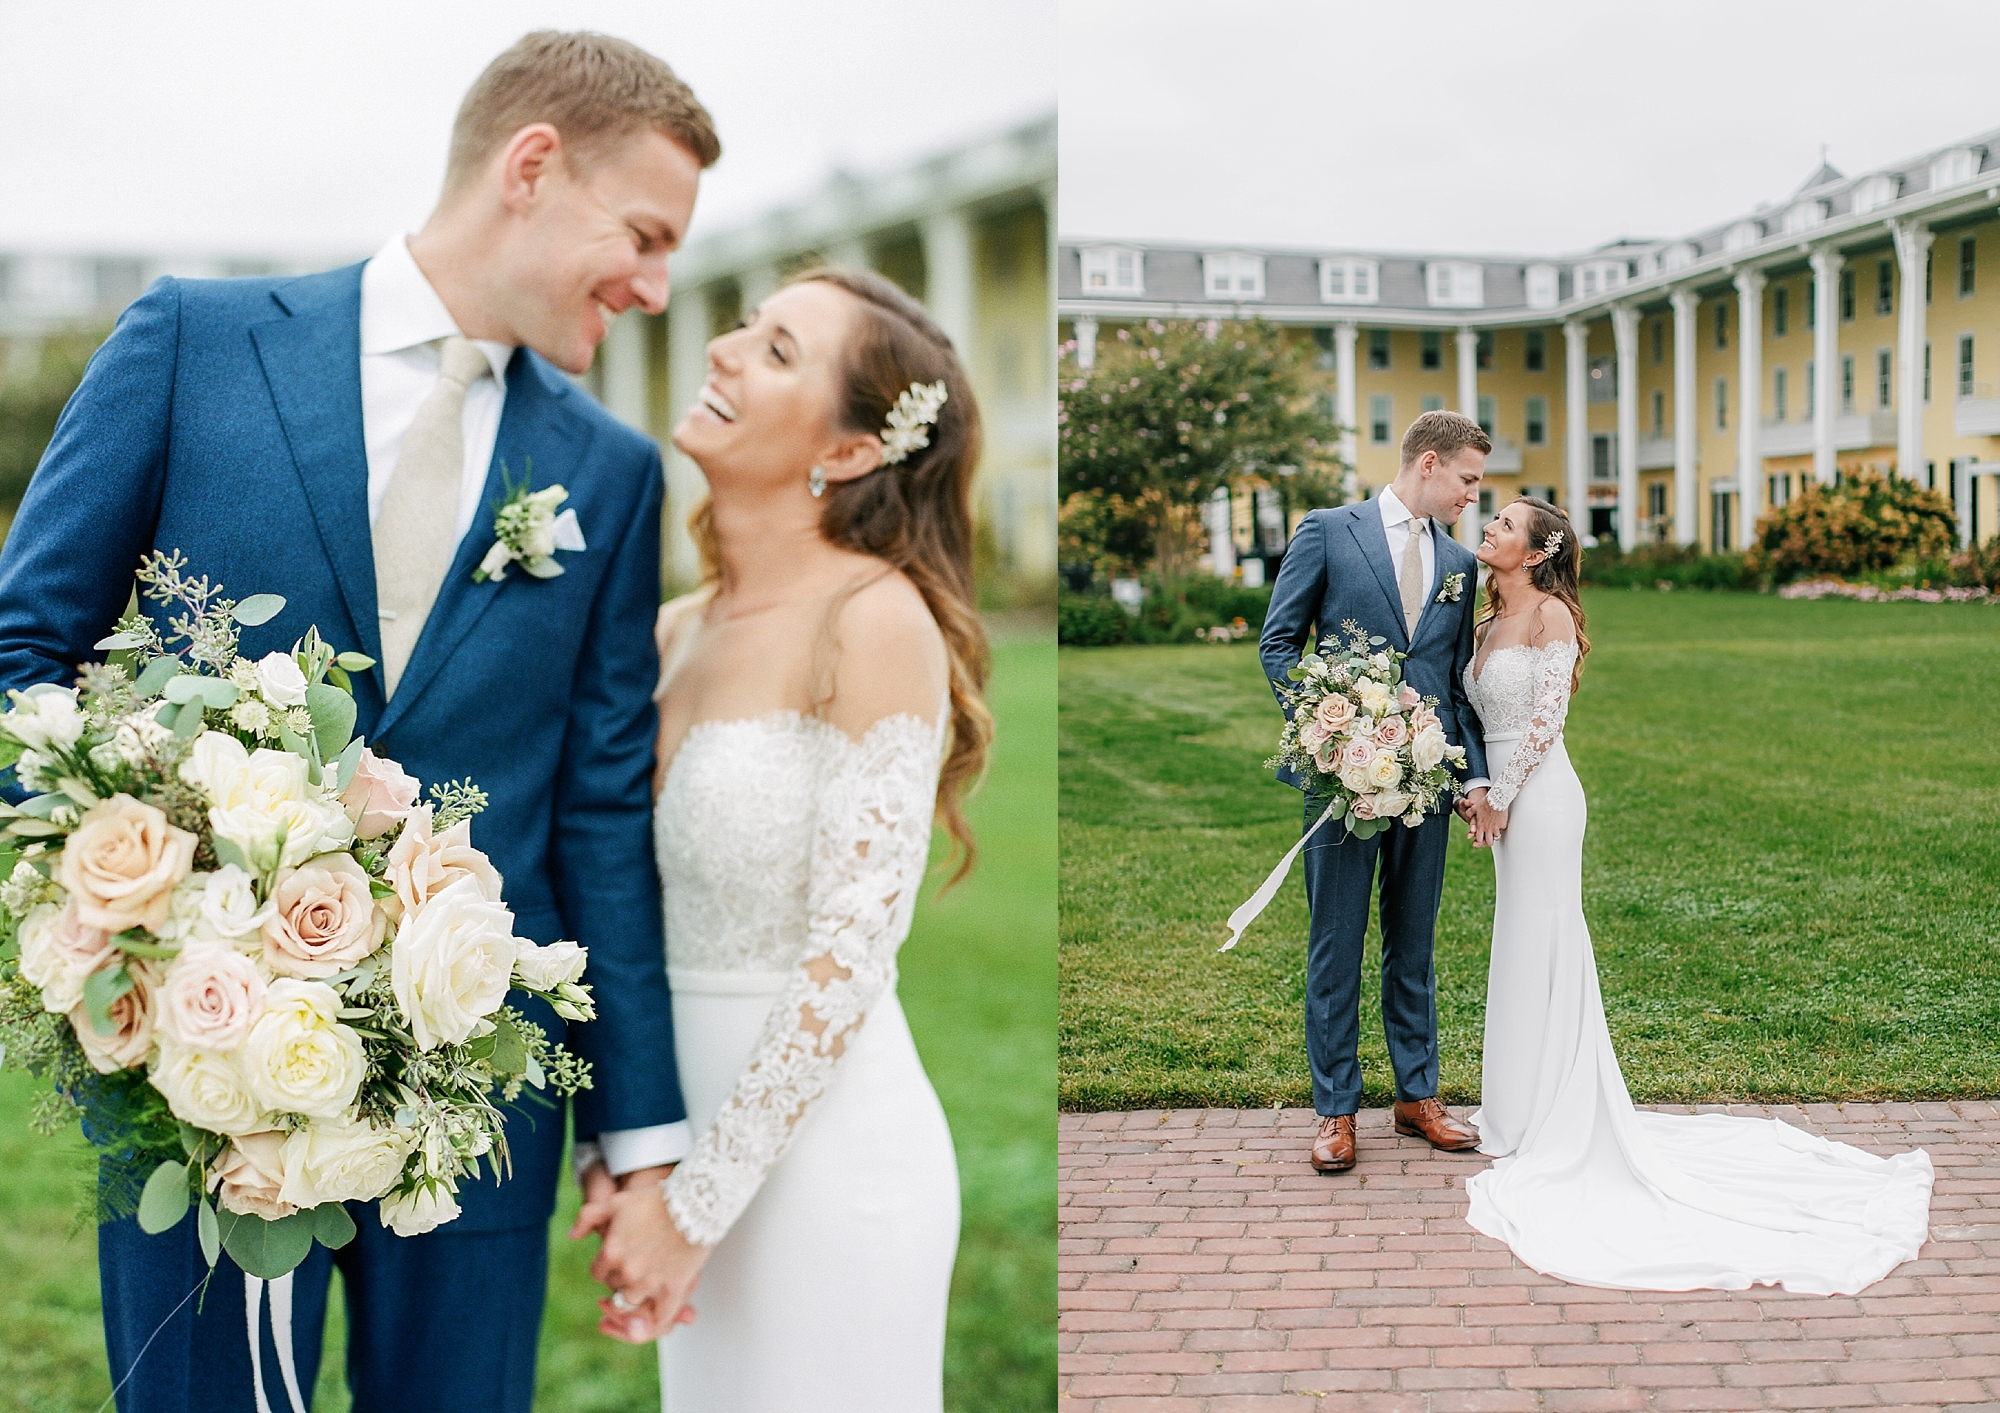 Intimate and Joyful Wedding Photography in Cape May NJ by Magdalena Studios 0020 4